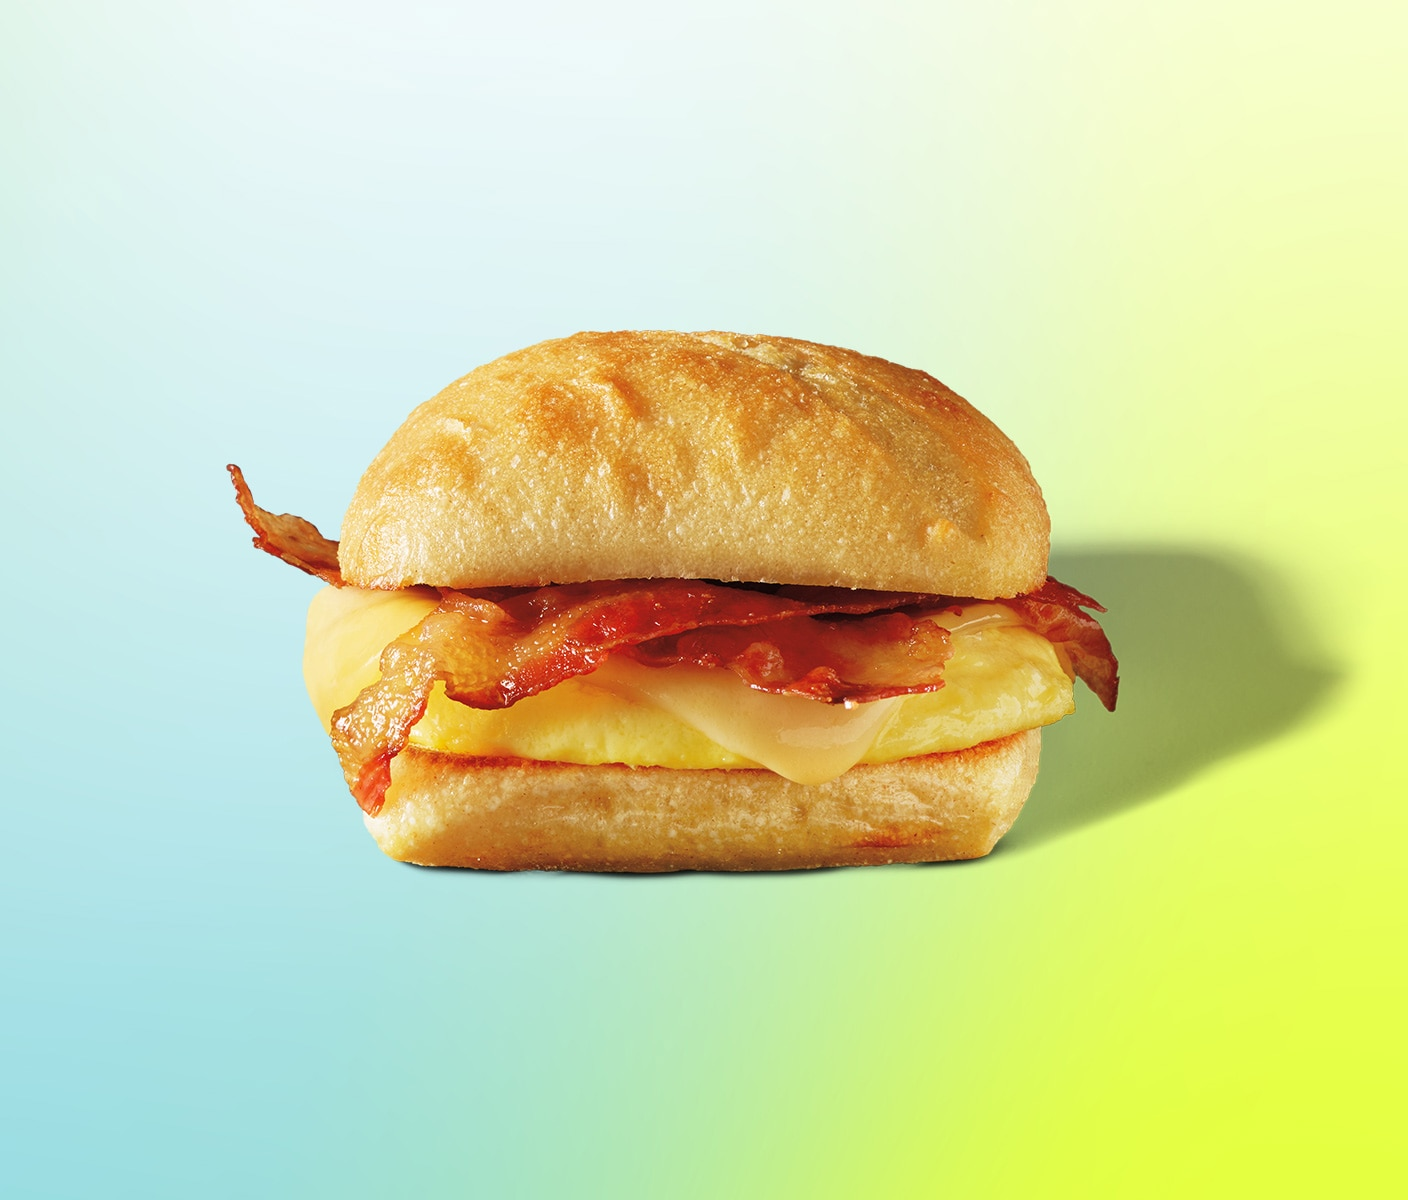 Layered sandwich with bacon strips and melted cheese on an artisan roll.